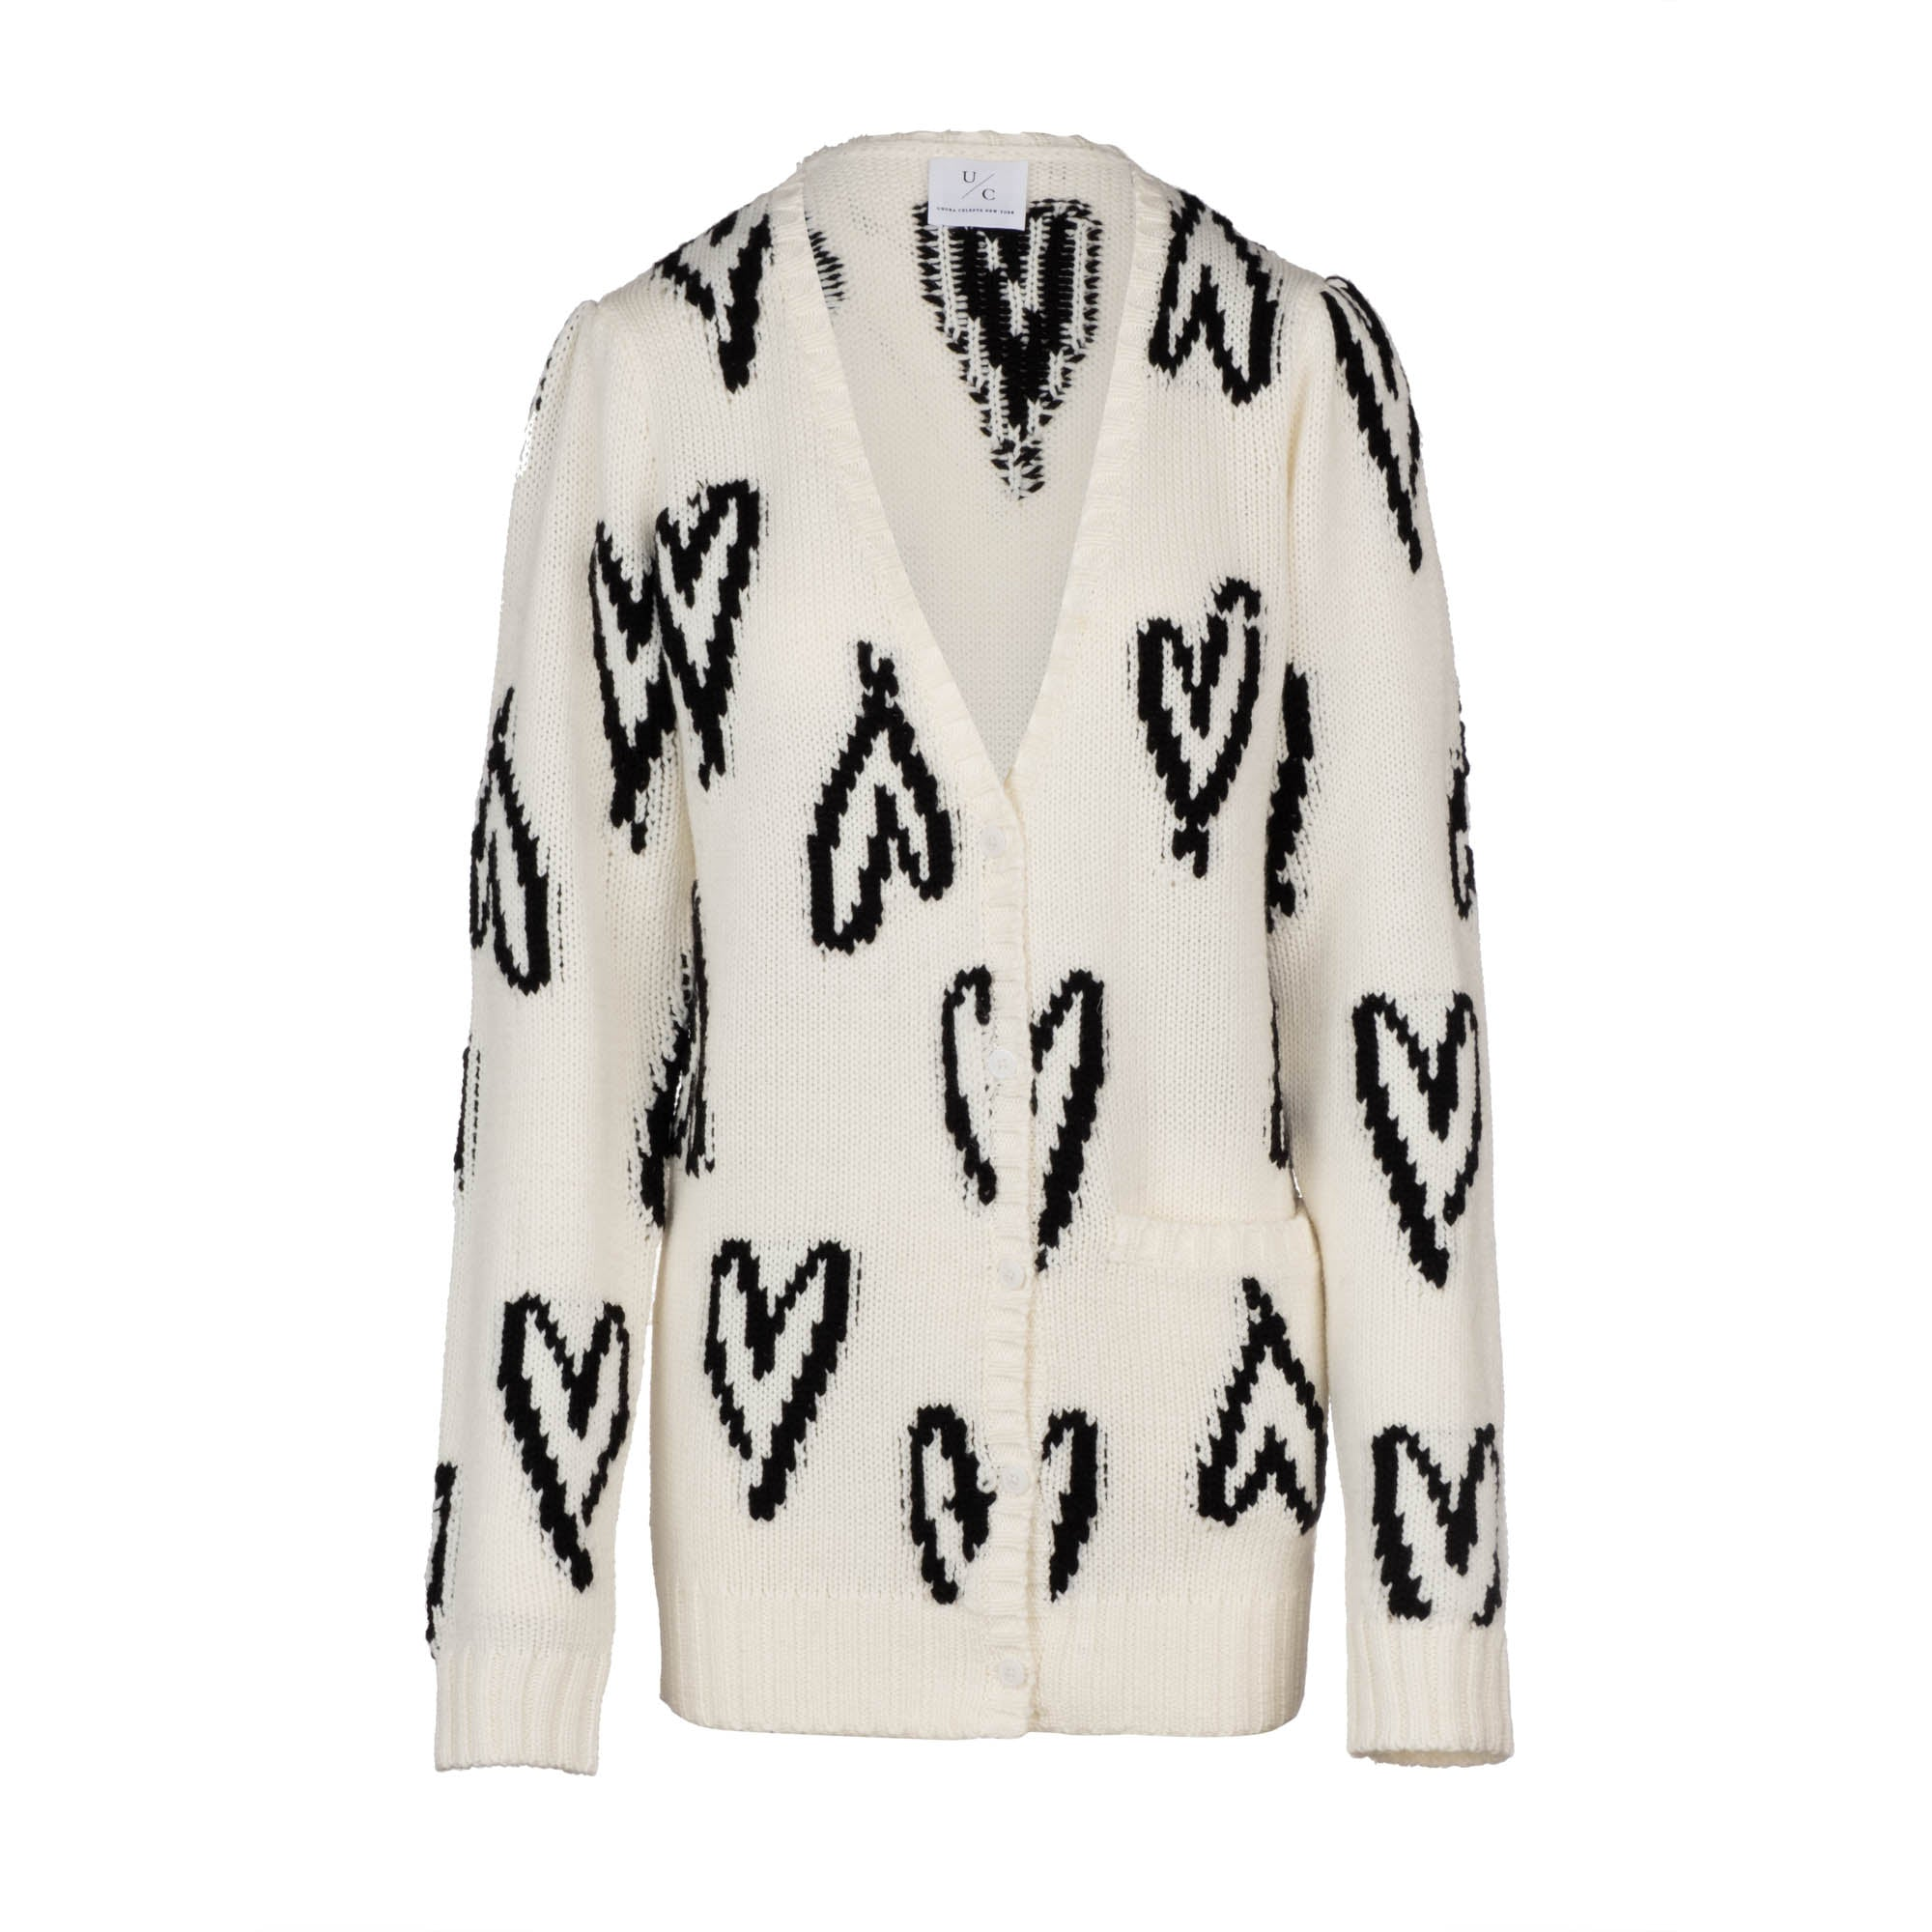 PRE-ORDER: Scribble Heart Cardigan - Cream (Ships 1/30)